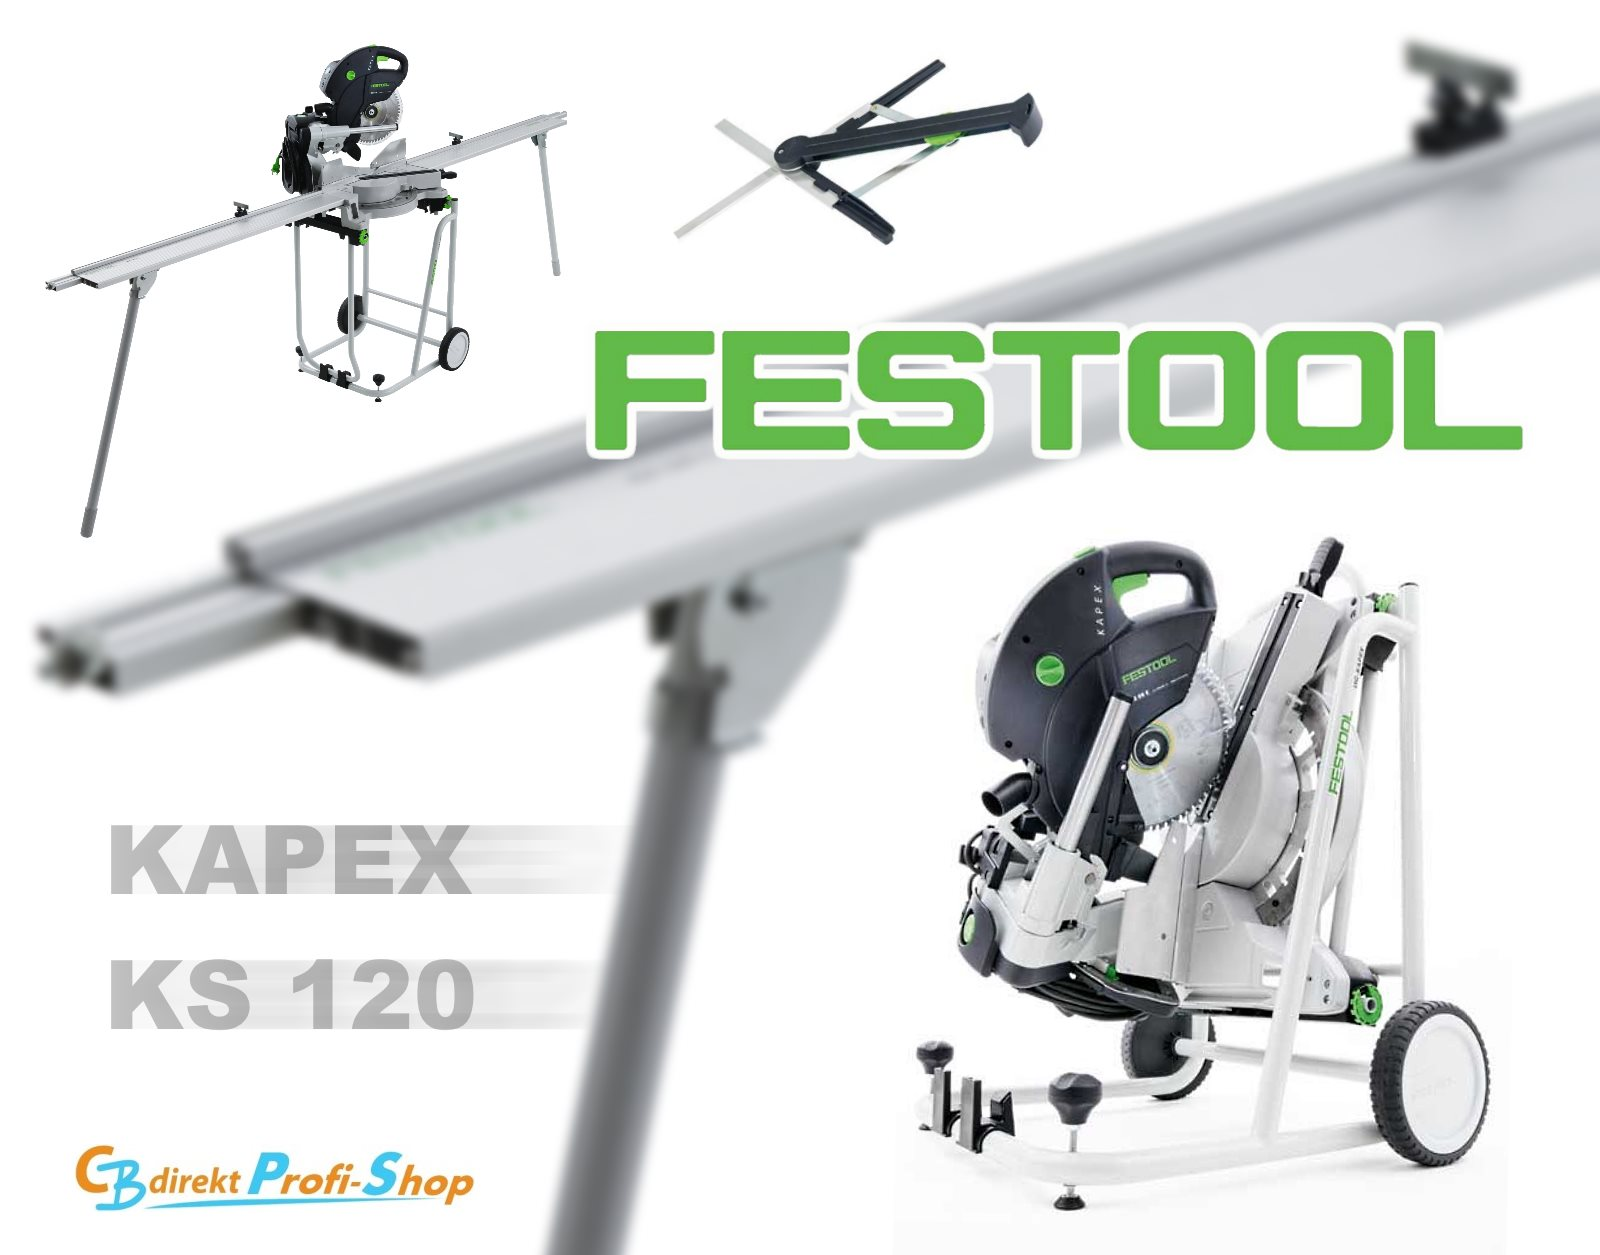 FESTOOL 561415 KS 120 UG SET Kapp-Zugsäe